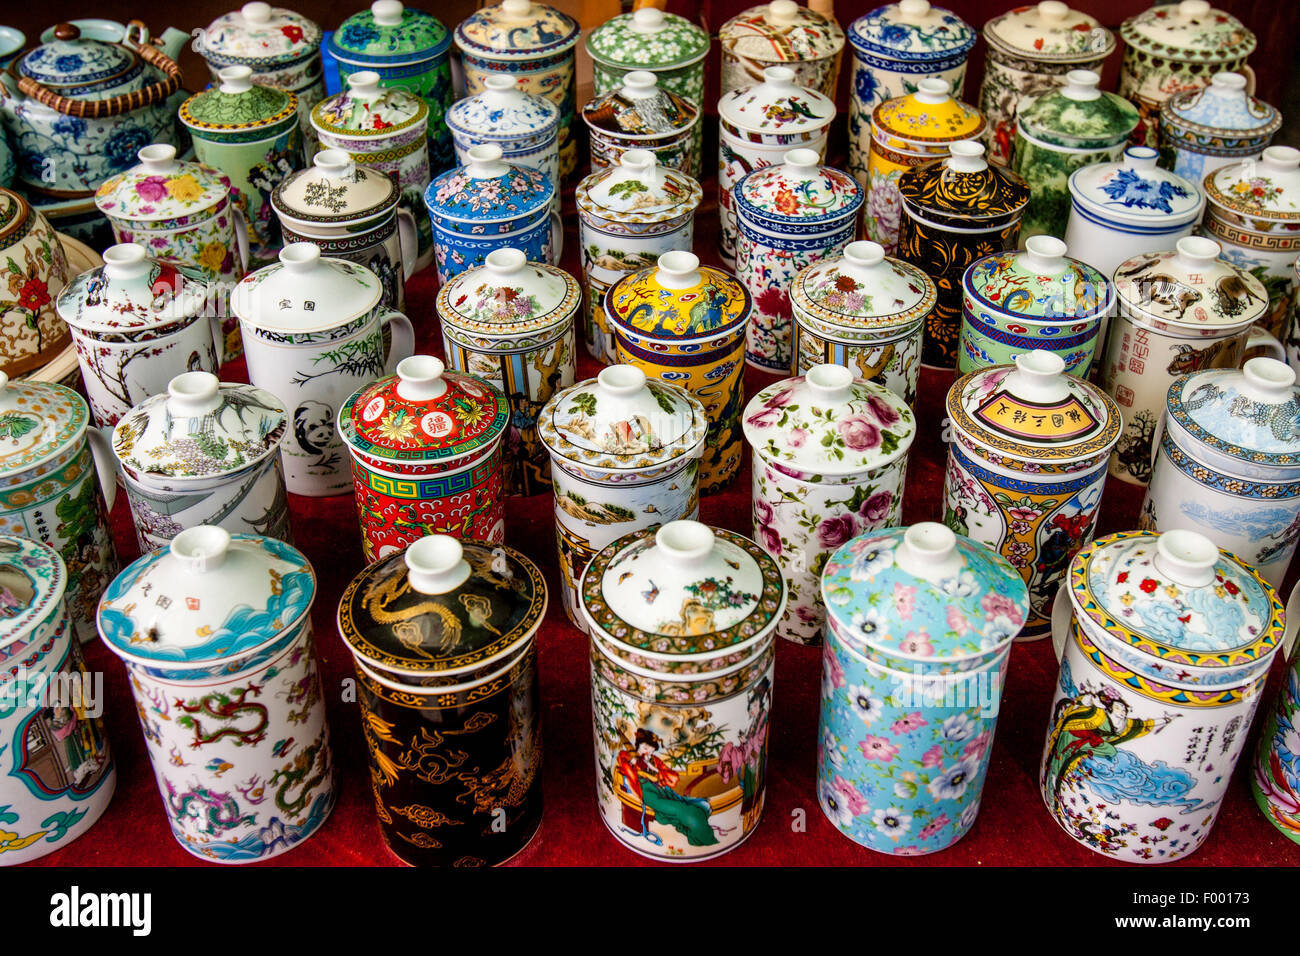 Tea Mugs For Sale Souvenir China Mug Stock Photos And Souvenir China Mug Stock